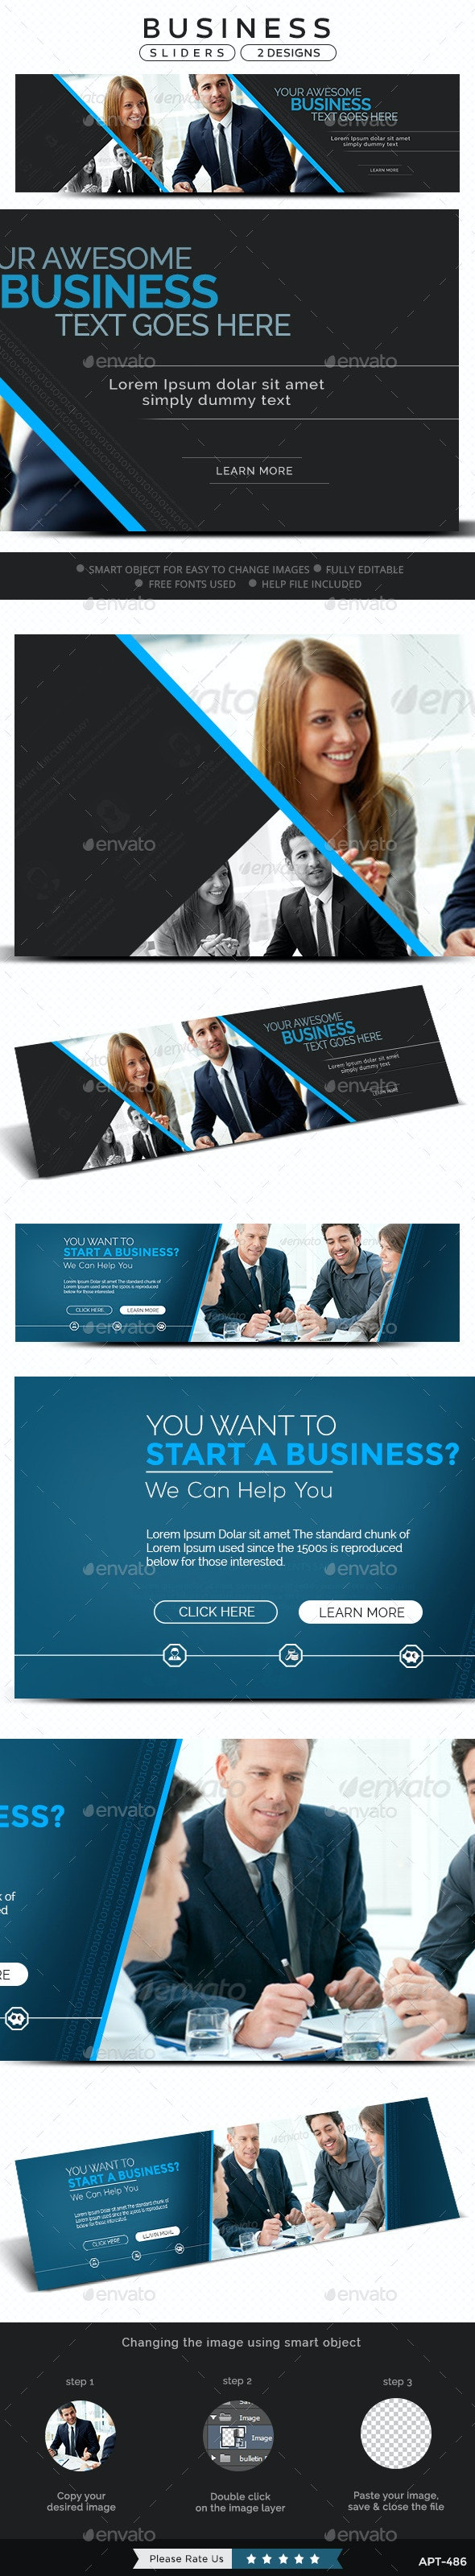 Business Sliders - 2 Designs - Sliders & Features Web Elements